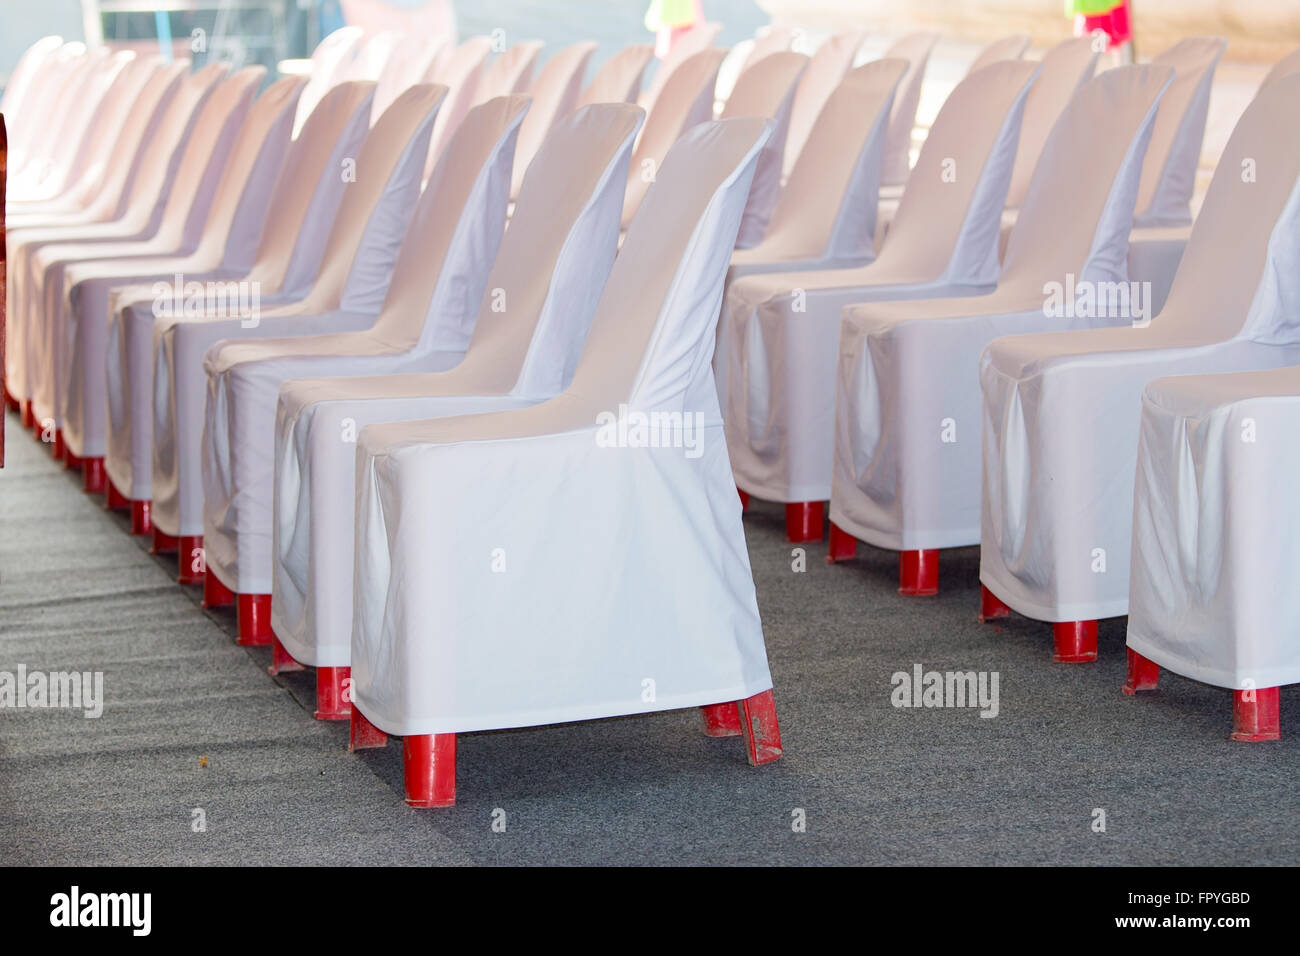 Red Plastic Chairs Were Covered With A White Cloth.